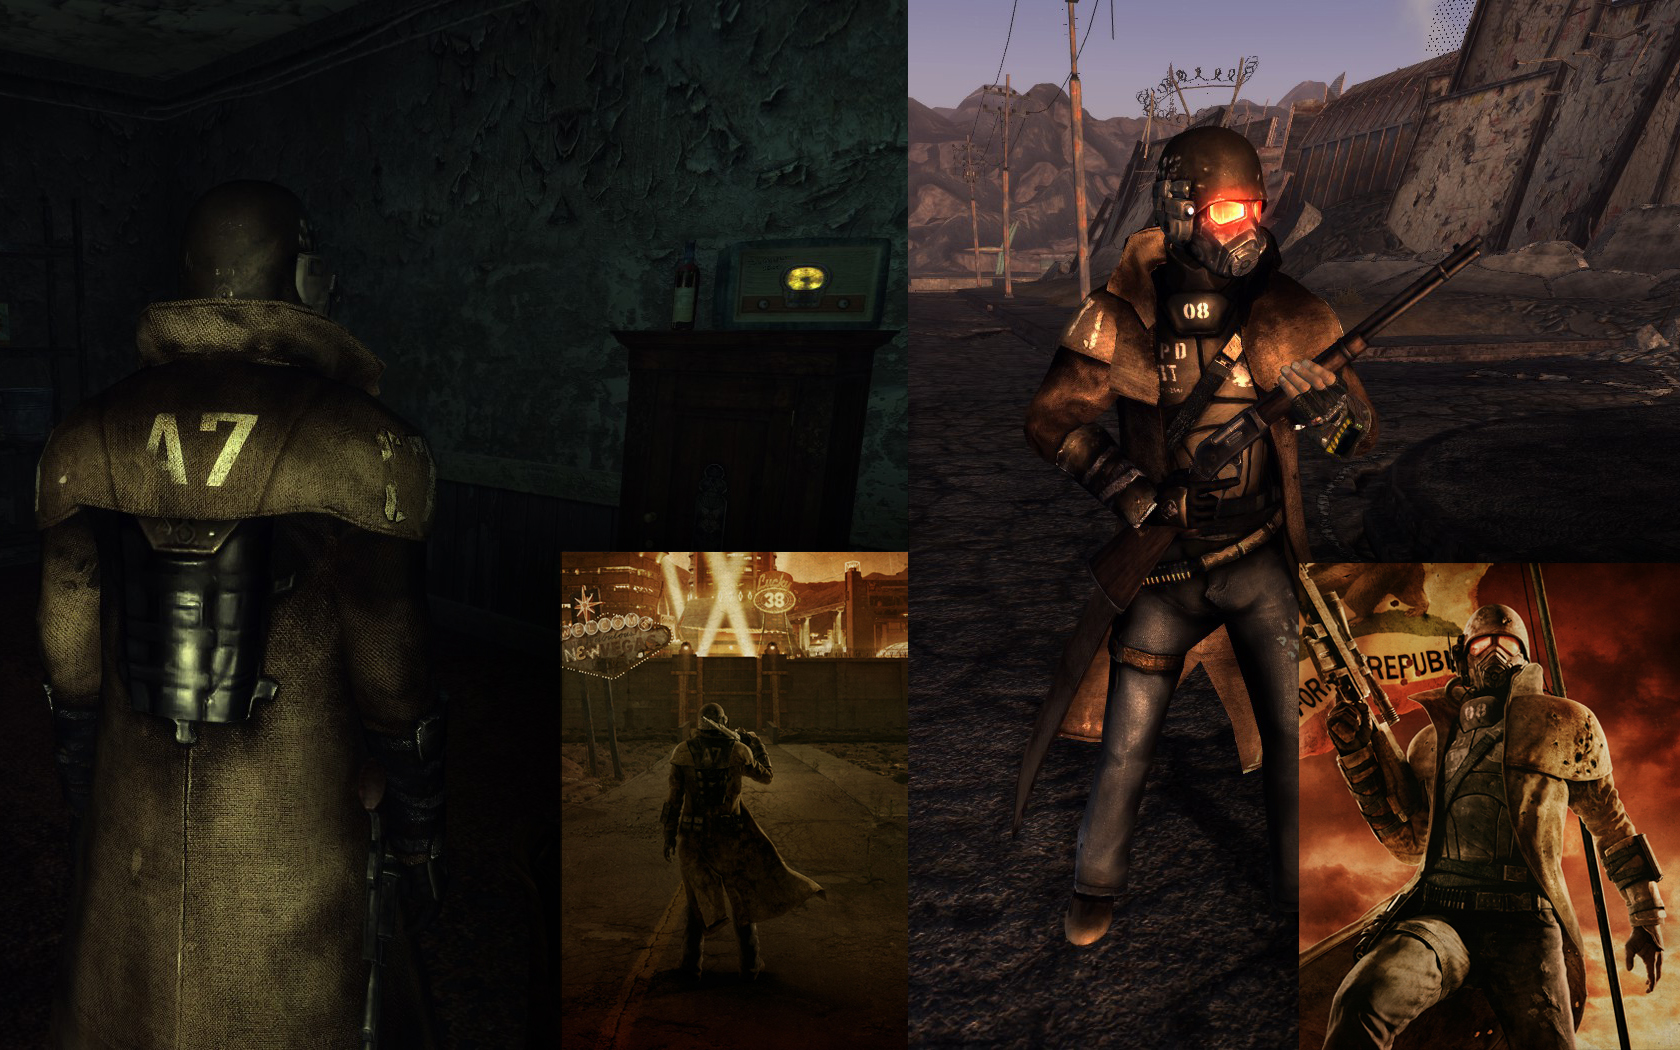 cr-hd combat ranger armor retexture v3 at fallout new vegas - mods